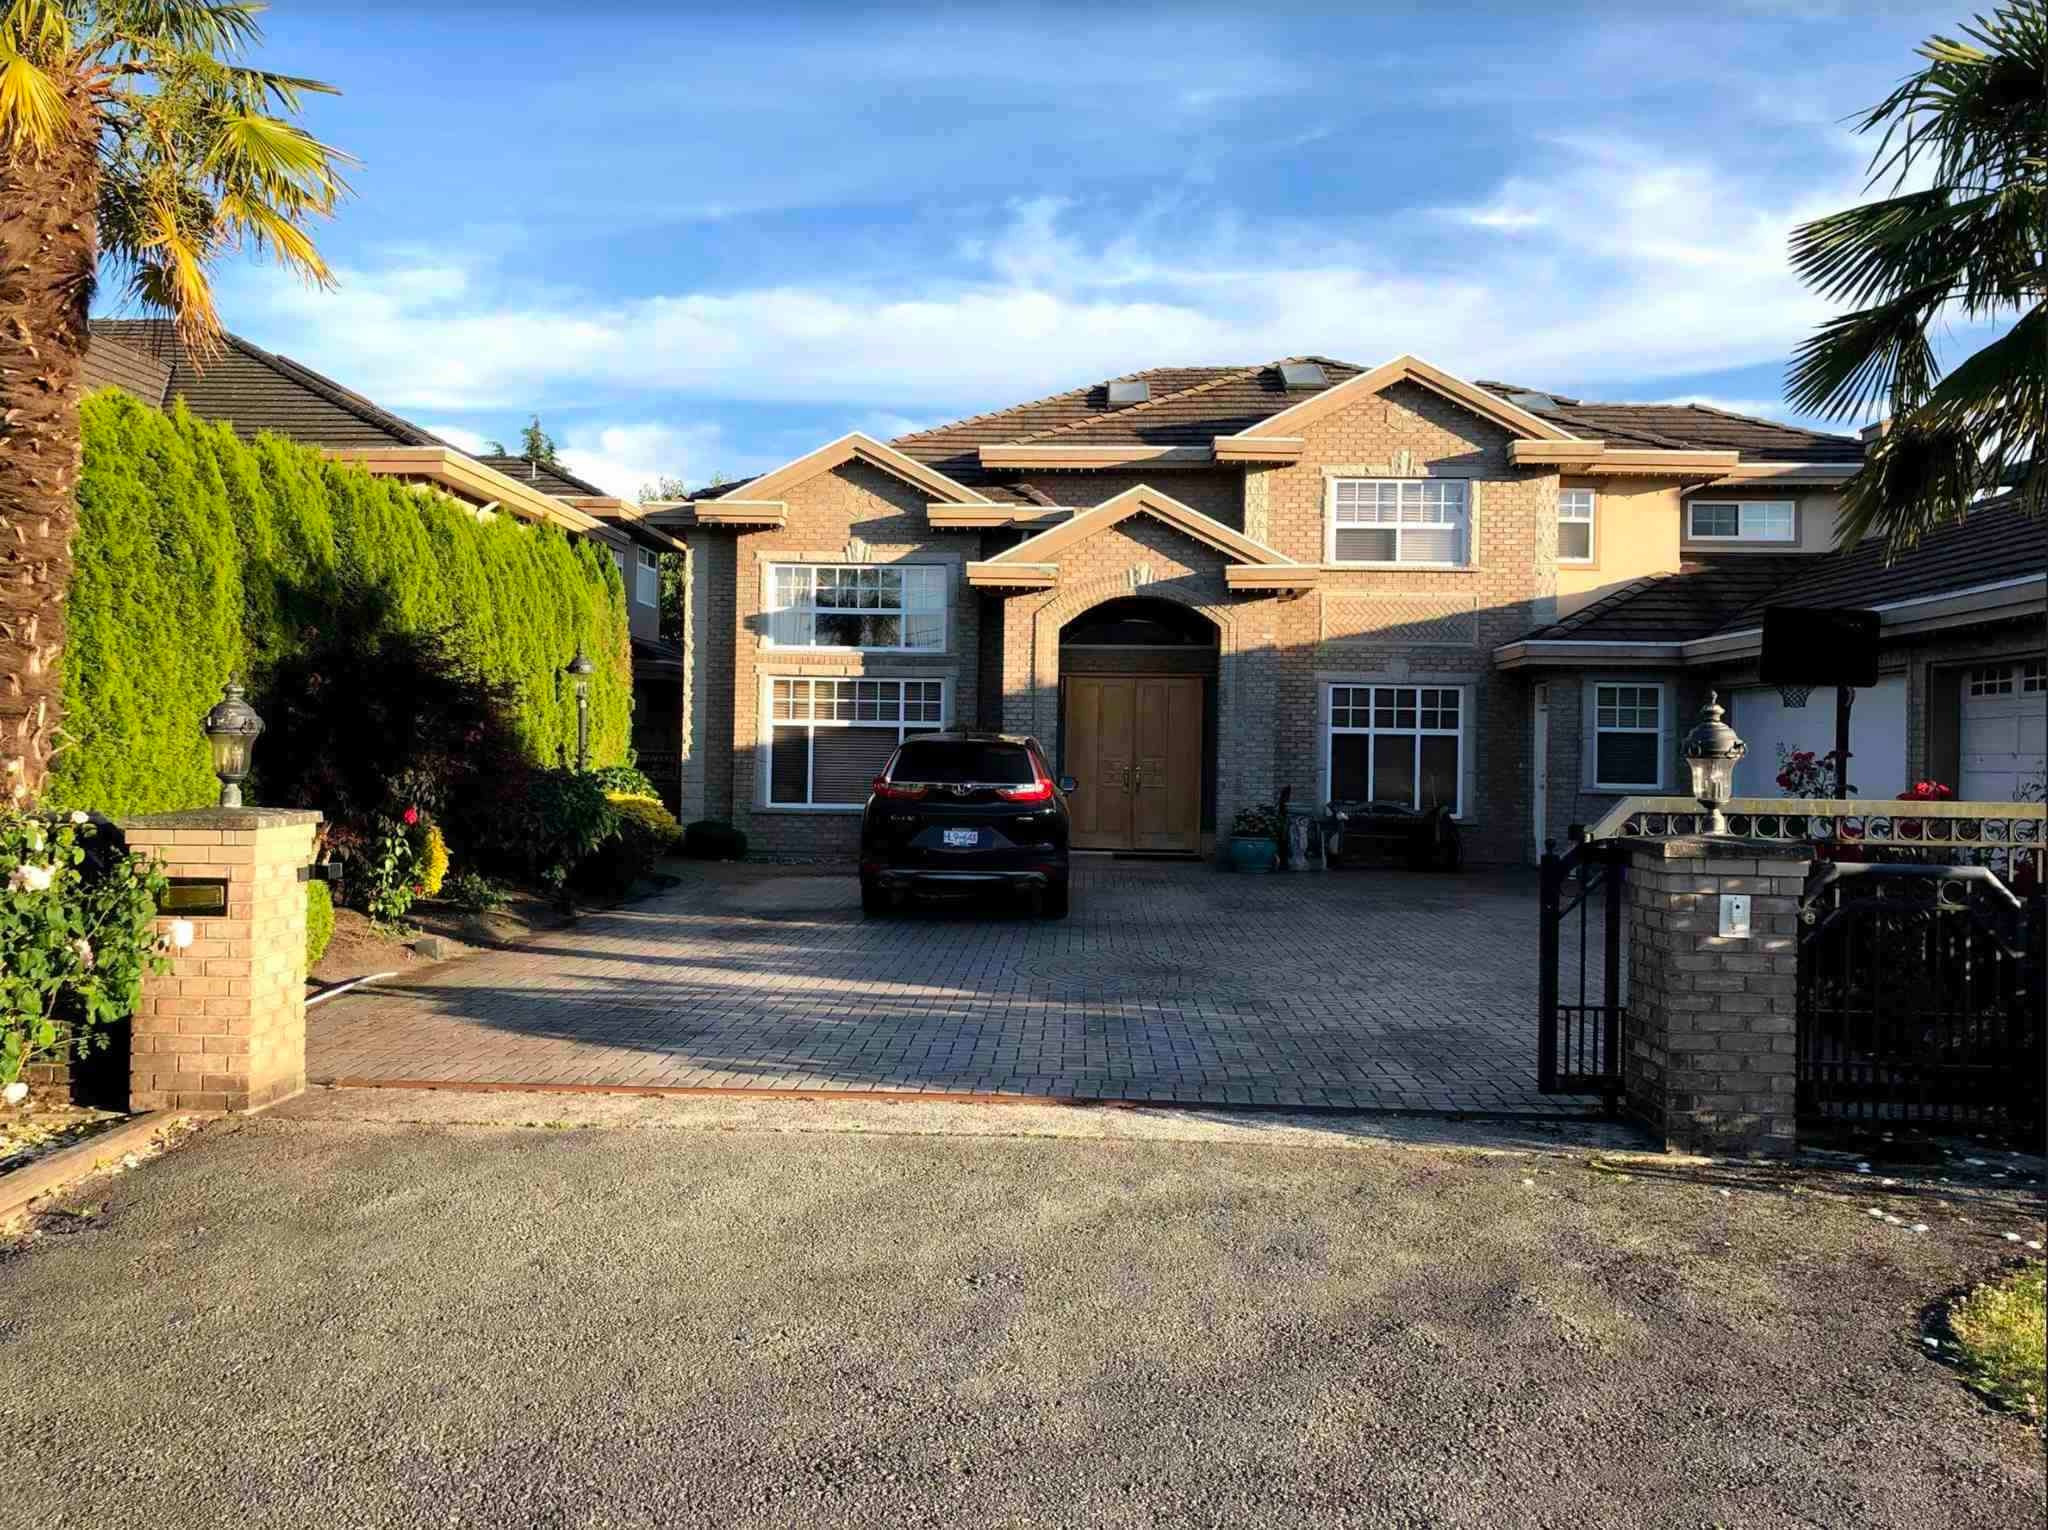 6220 UDY ROAD - Granville House/Single Family for sale, 5 Bedrooms (R2602926)